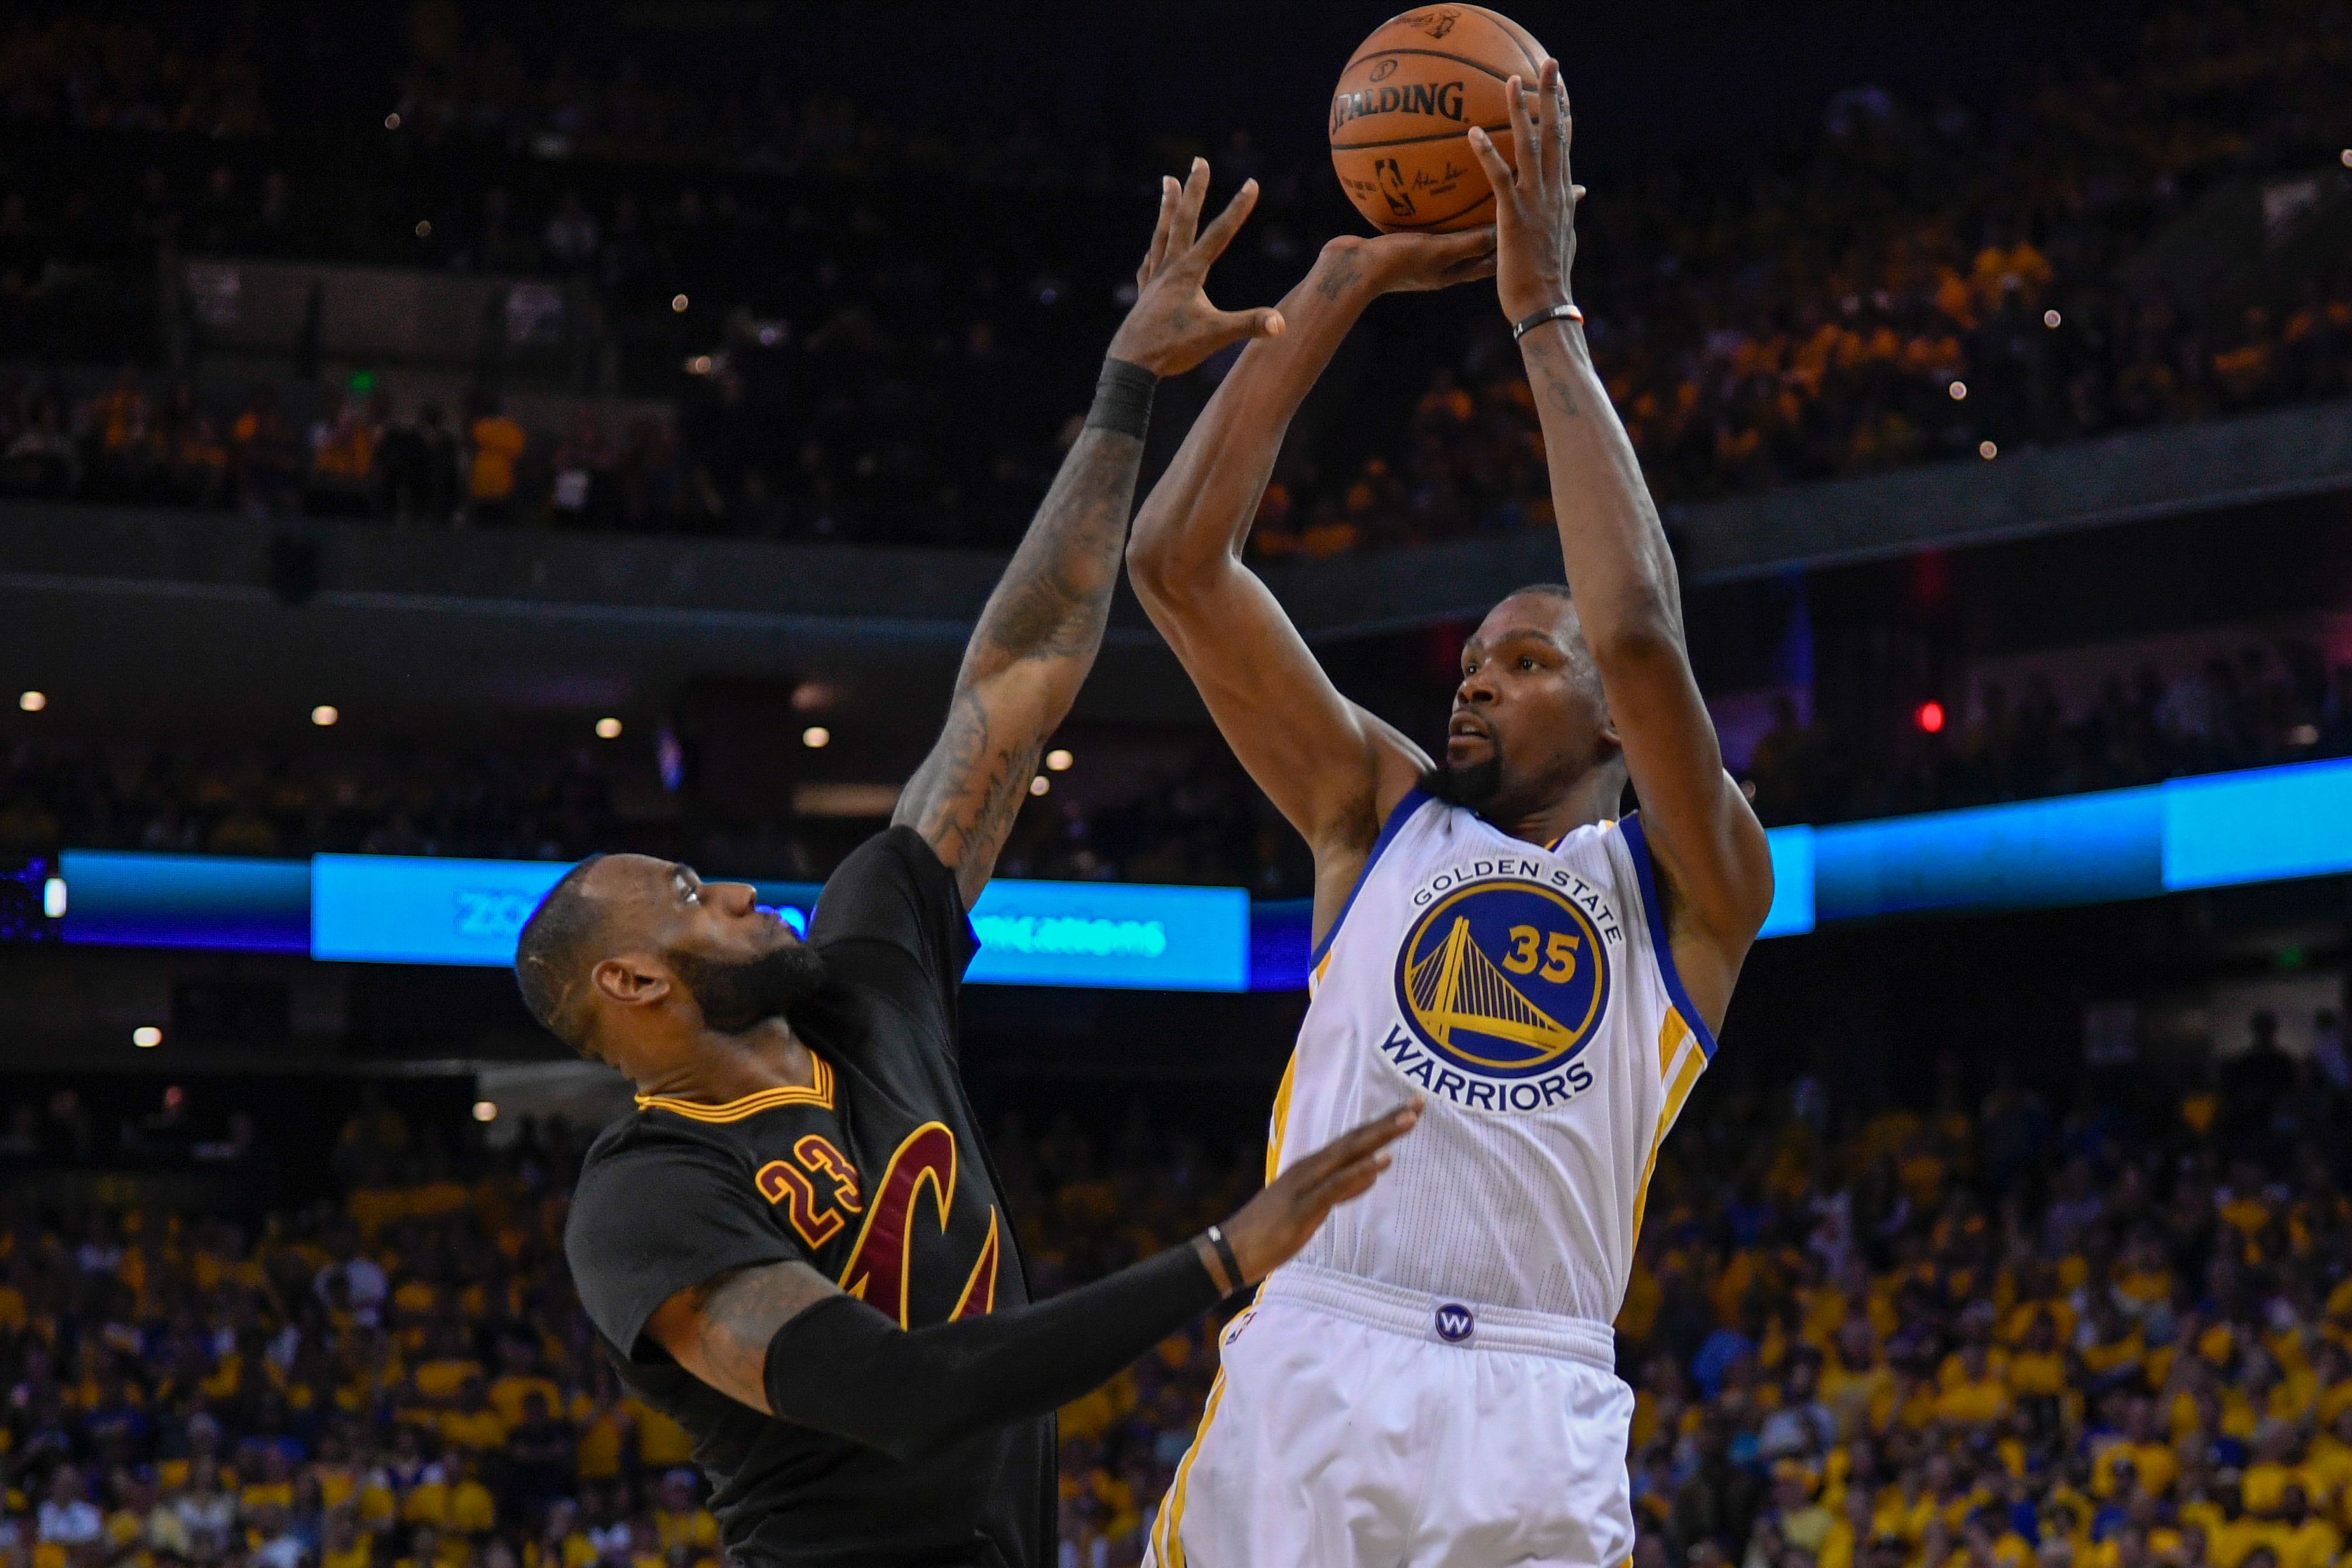 10123616-nba-finals-cleveland-cavaliers-at-golden-state-warriors